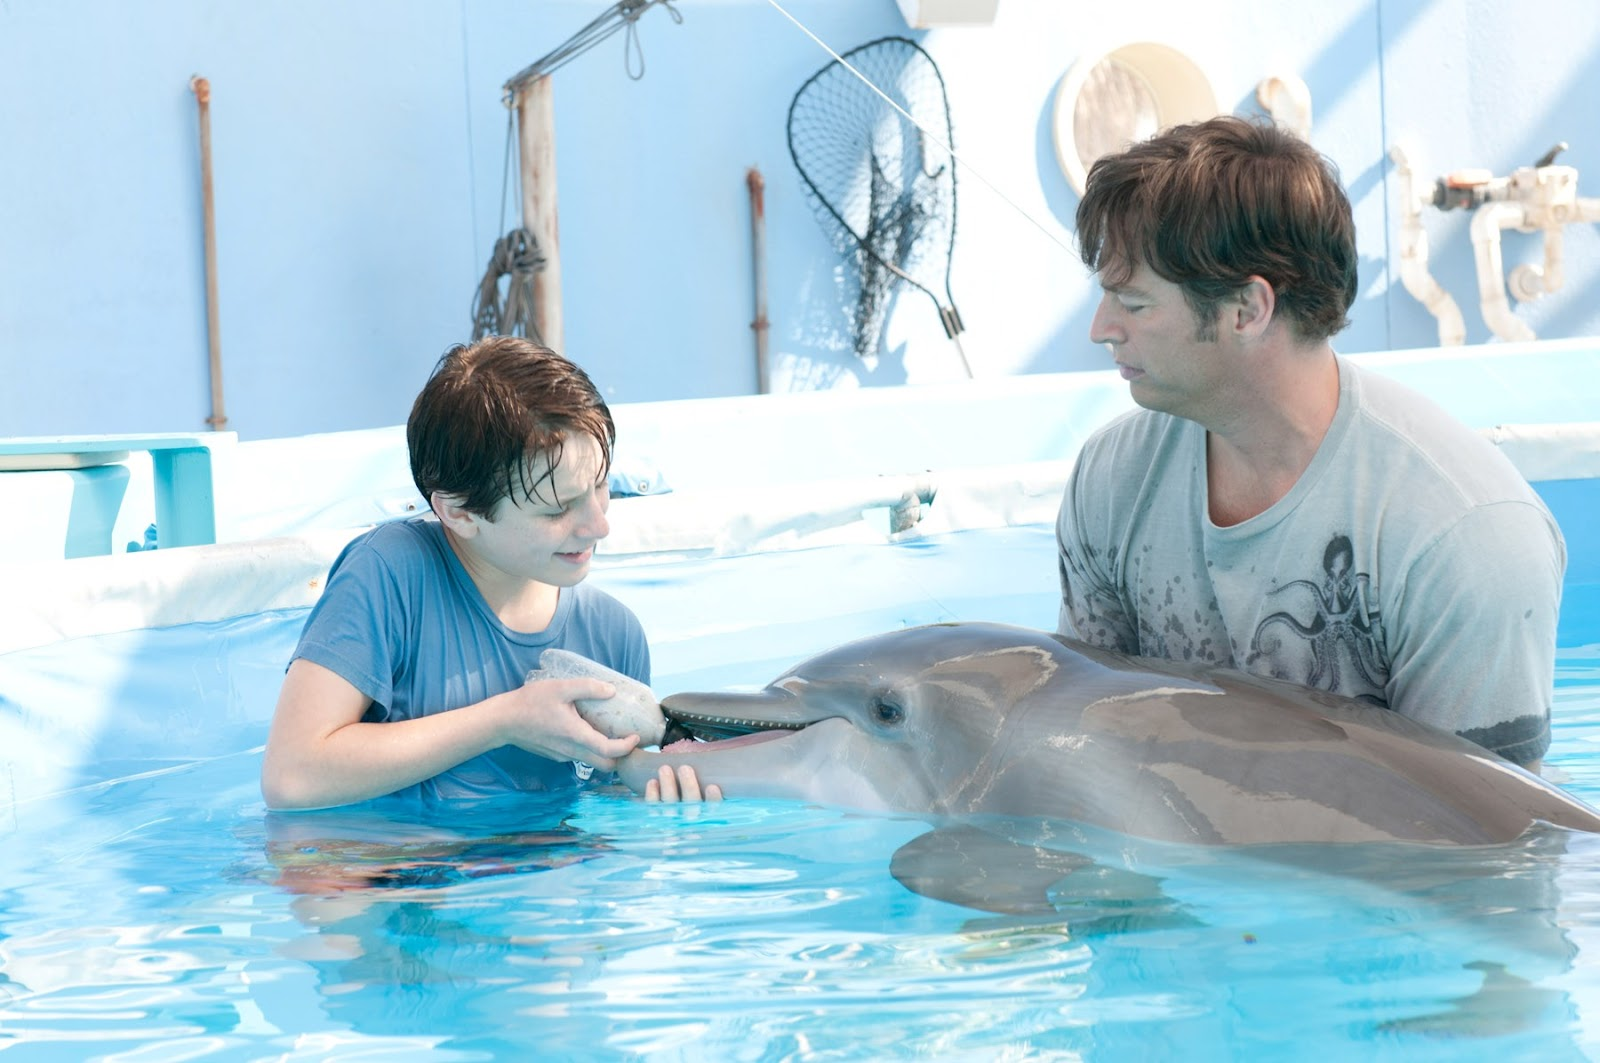 http://4.bp.blogspot.com/-O2BqkYc9No8/TzHKiitYCHI/AAAAAAAAC4g/RvS-XWhypjs/s1600/Dolphin_Tale_movie_image_Harry-Connick-Jr-1.jpg